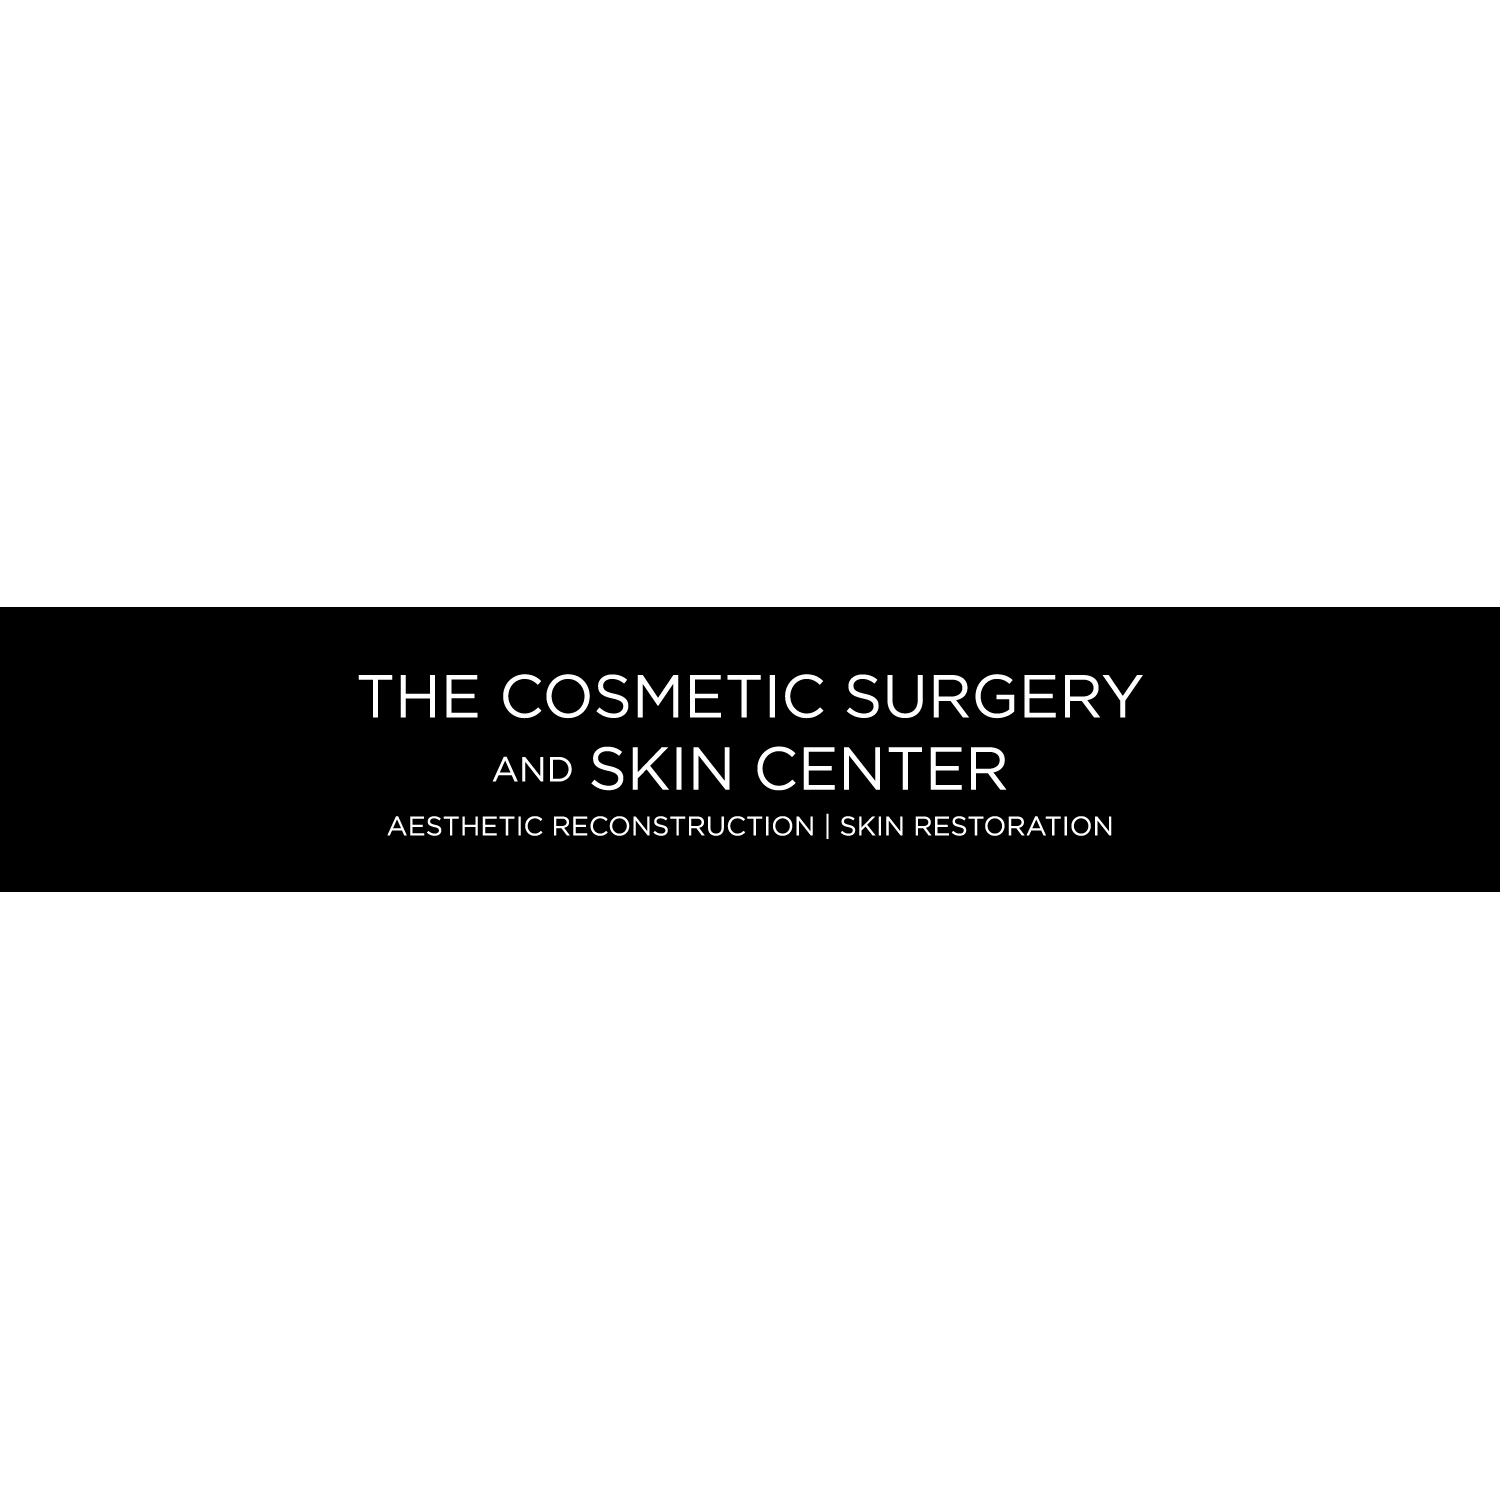 The Cosmetic Surgery and Skin Center